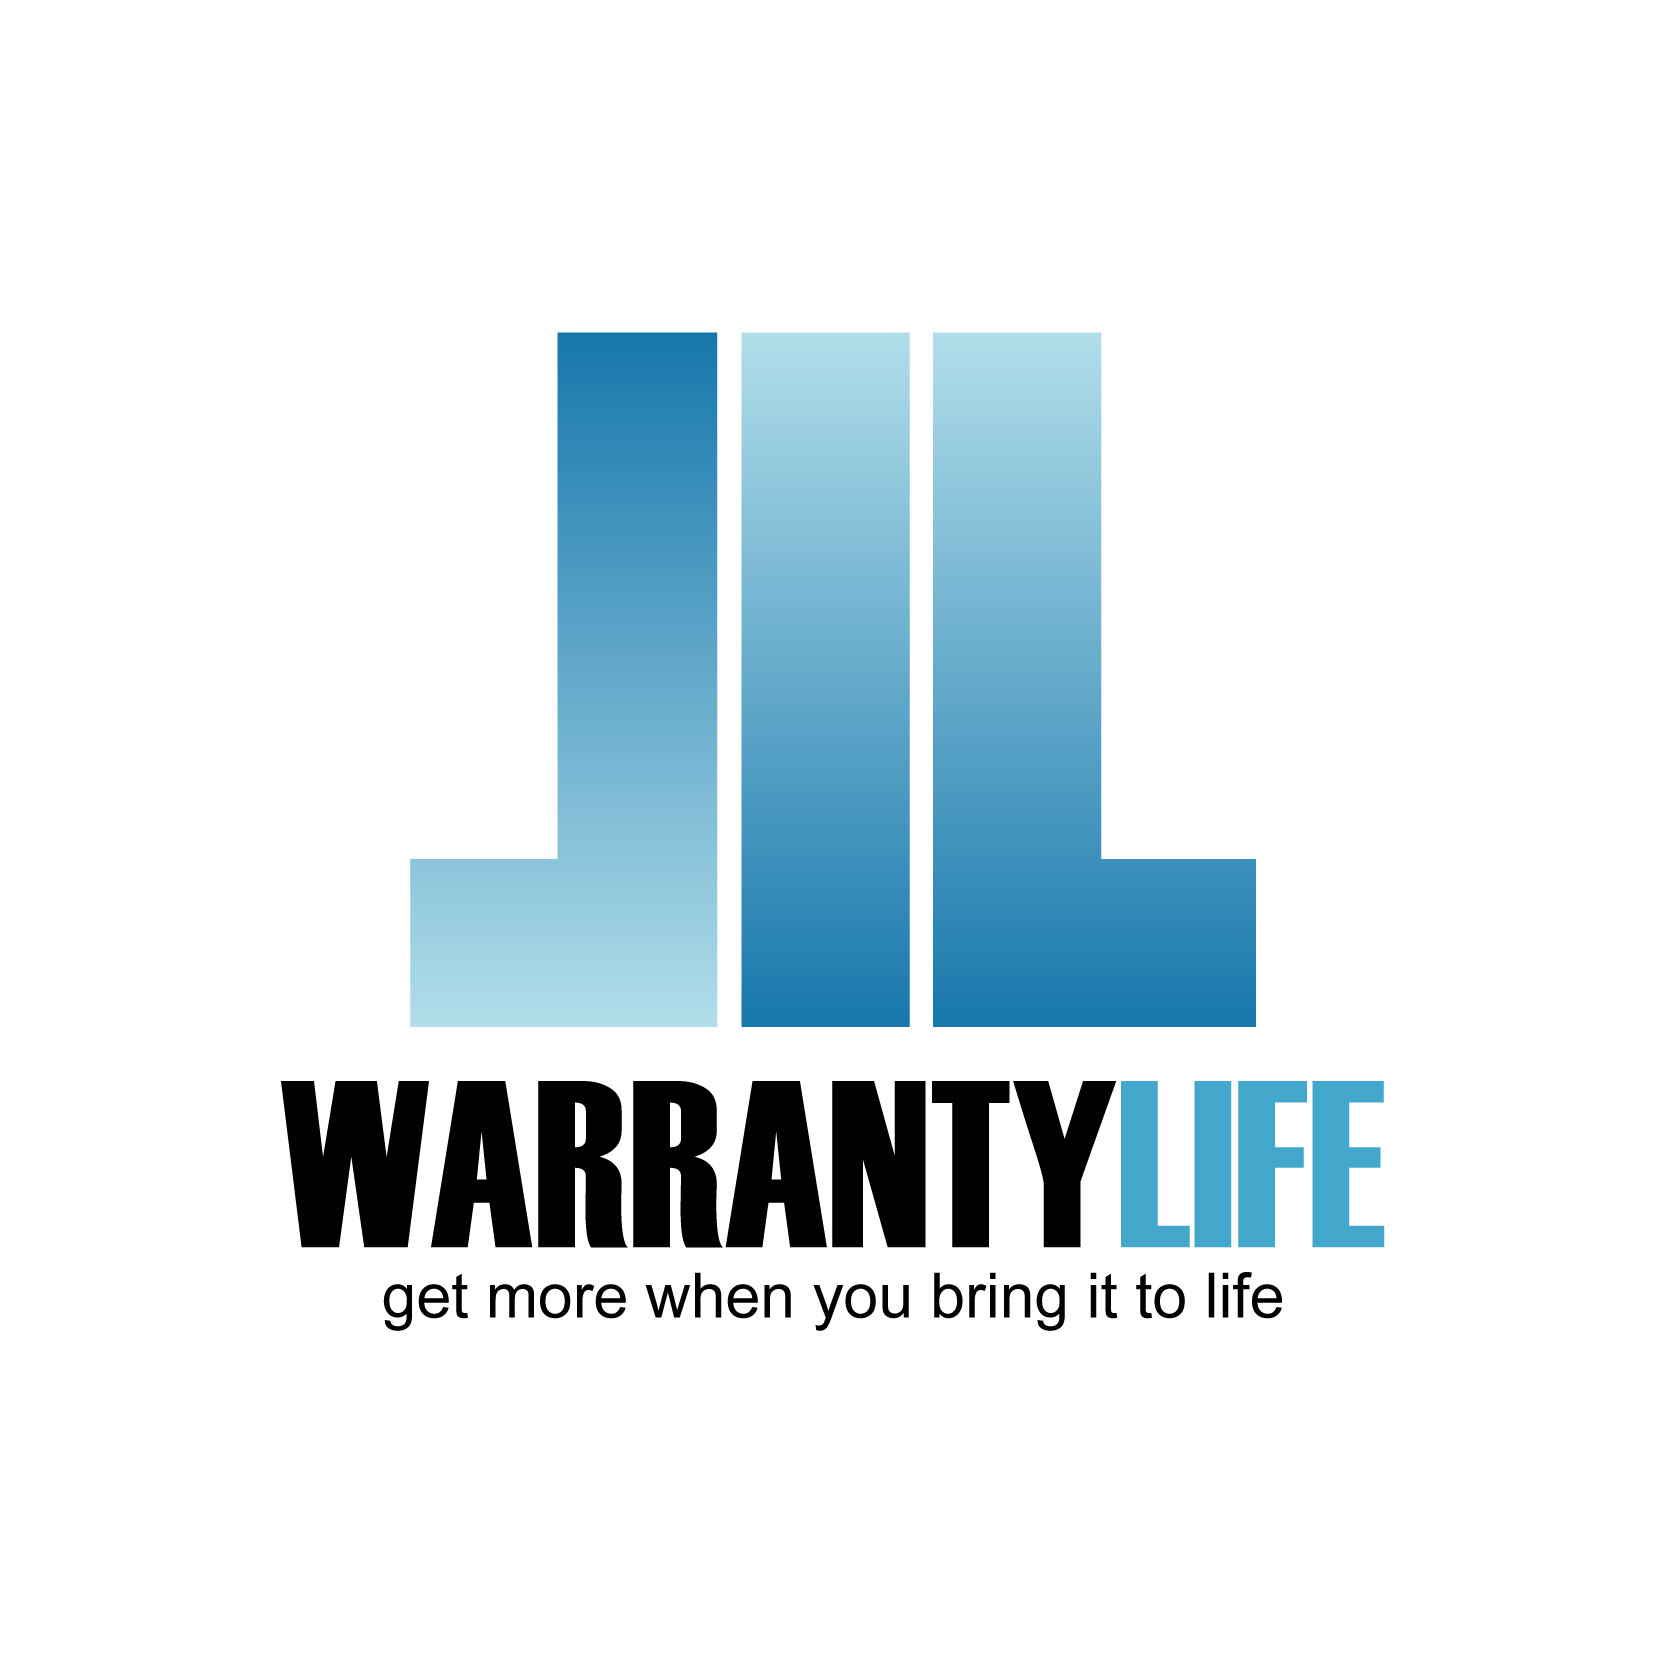 Logo Design by Private User - Entry No. 129 in the Logo Design Contest WarrantyLife Logo Design.